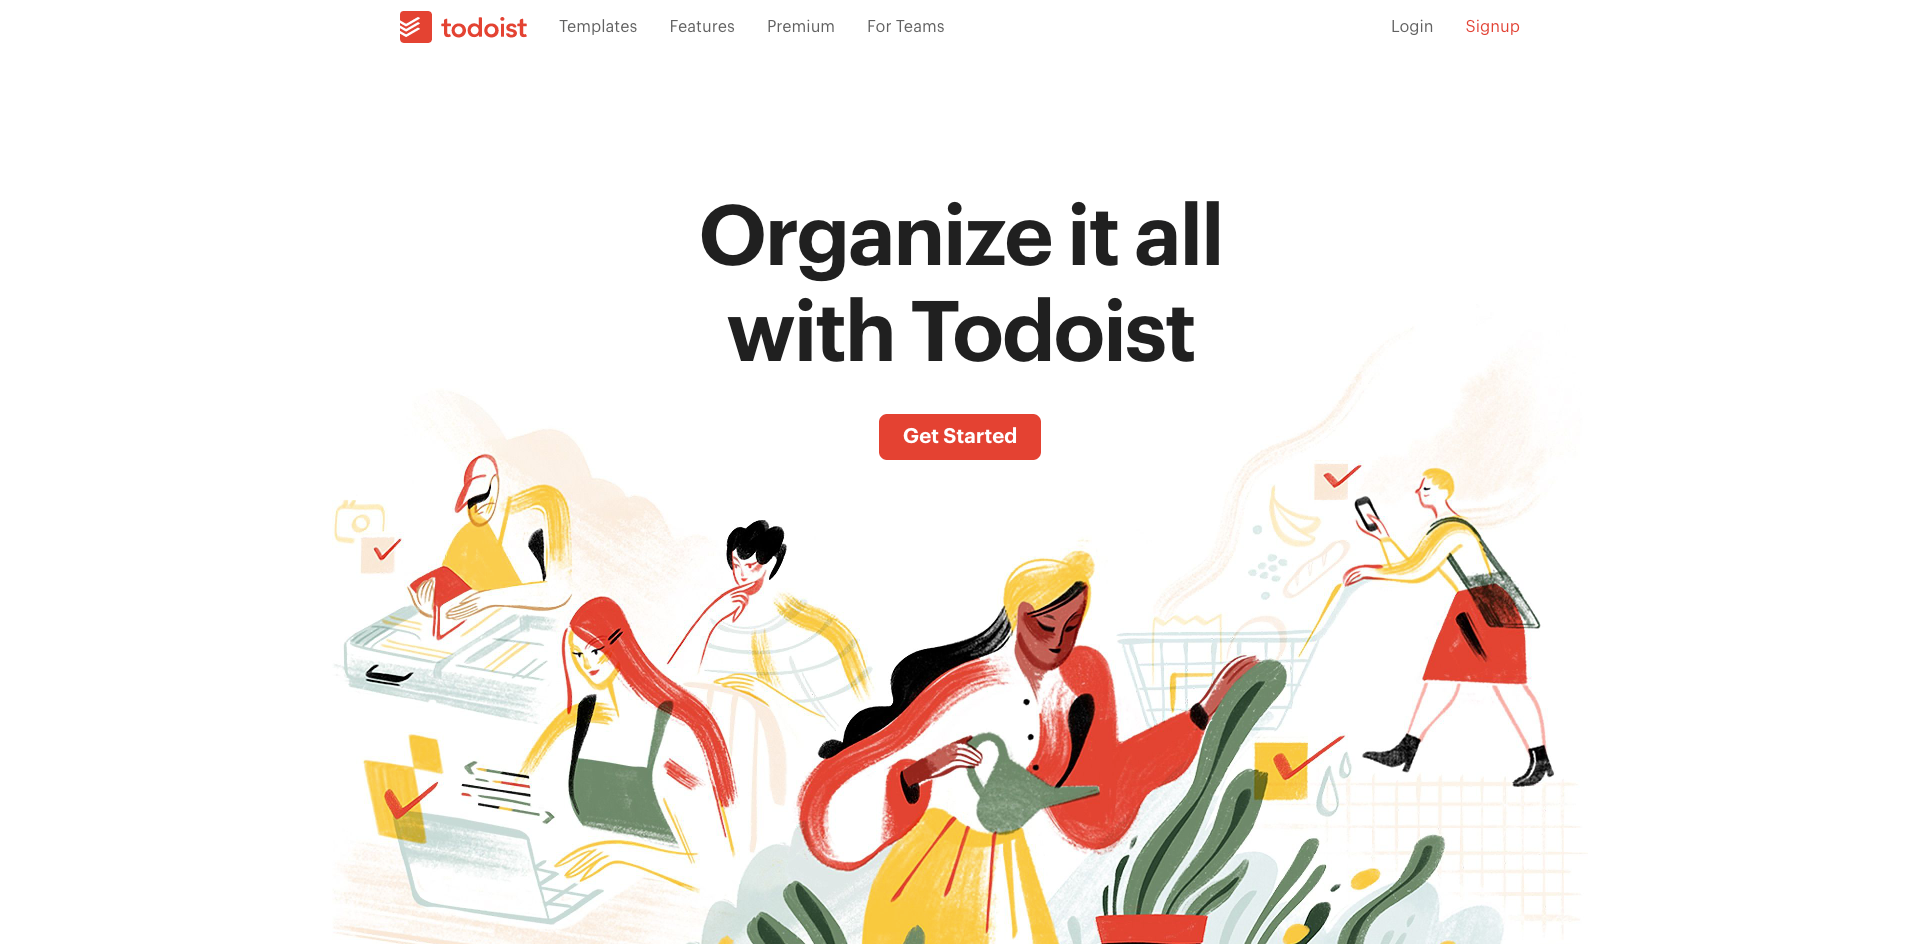 todoist homepage screenshot